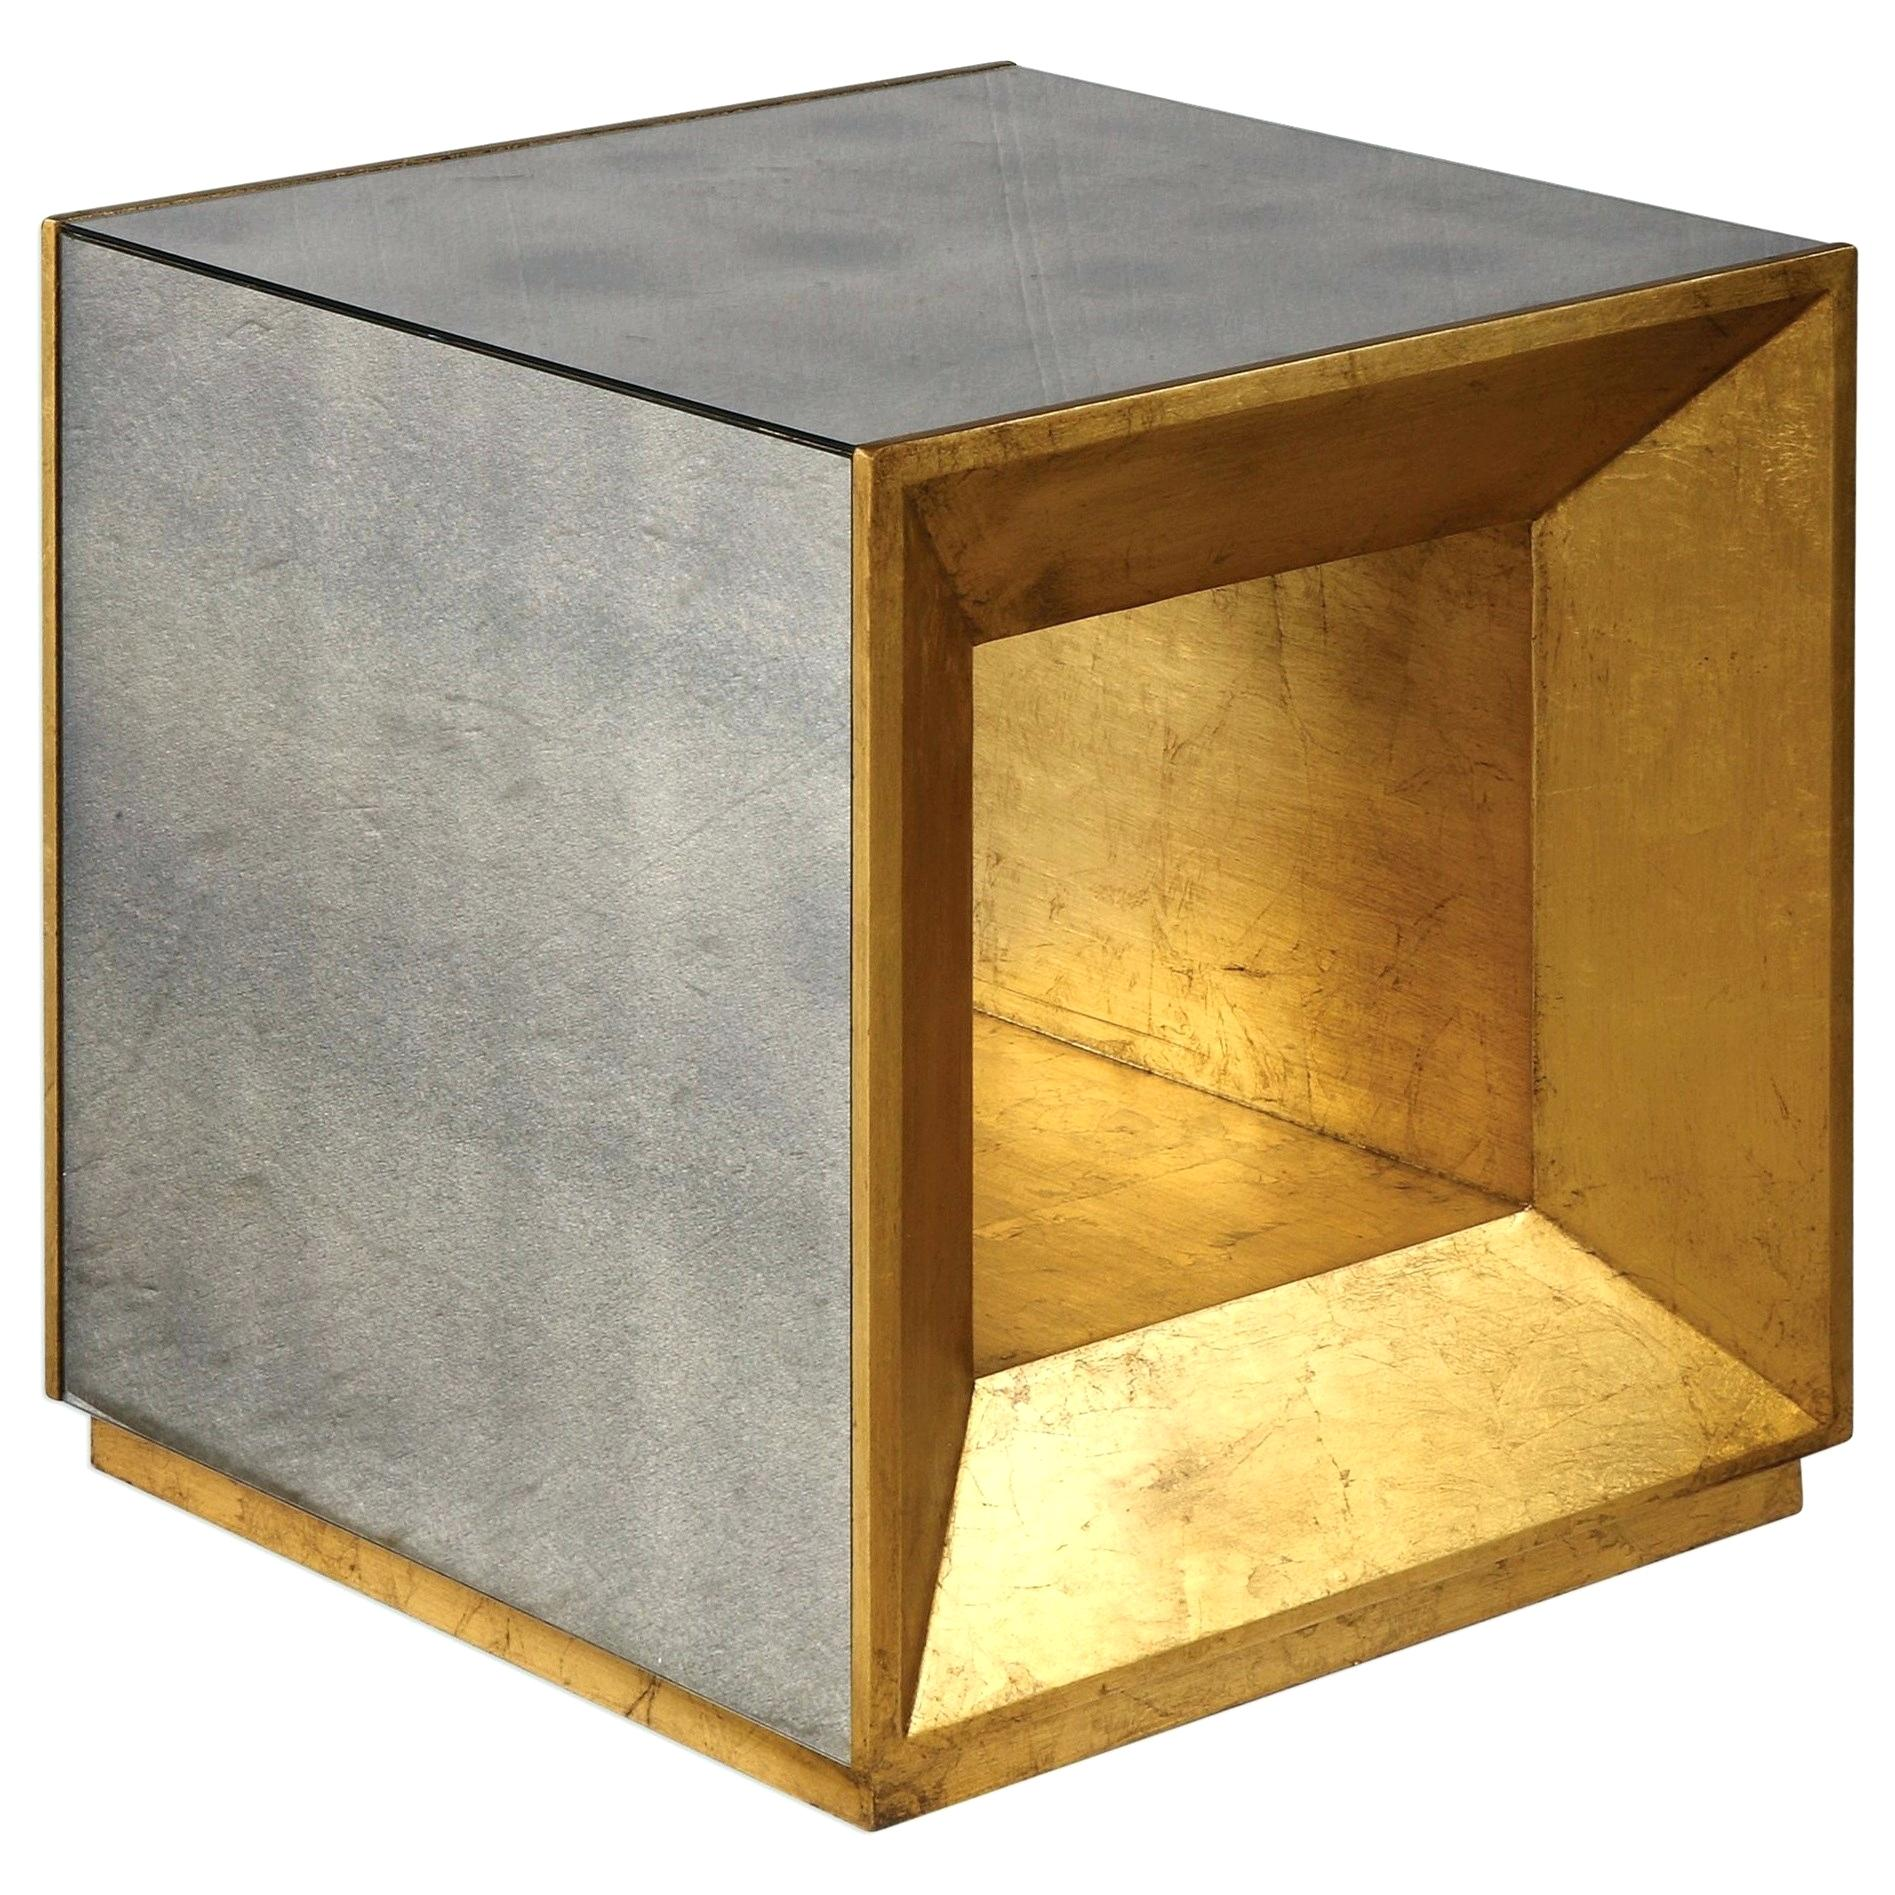 cube accent tables modern glass top end table uttermost furniture flair gold with cherry mission hardwood floor tile reclaimed wood tablecloth for dining porch side mid century